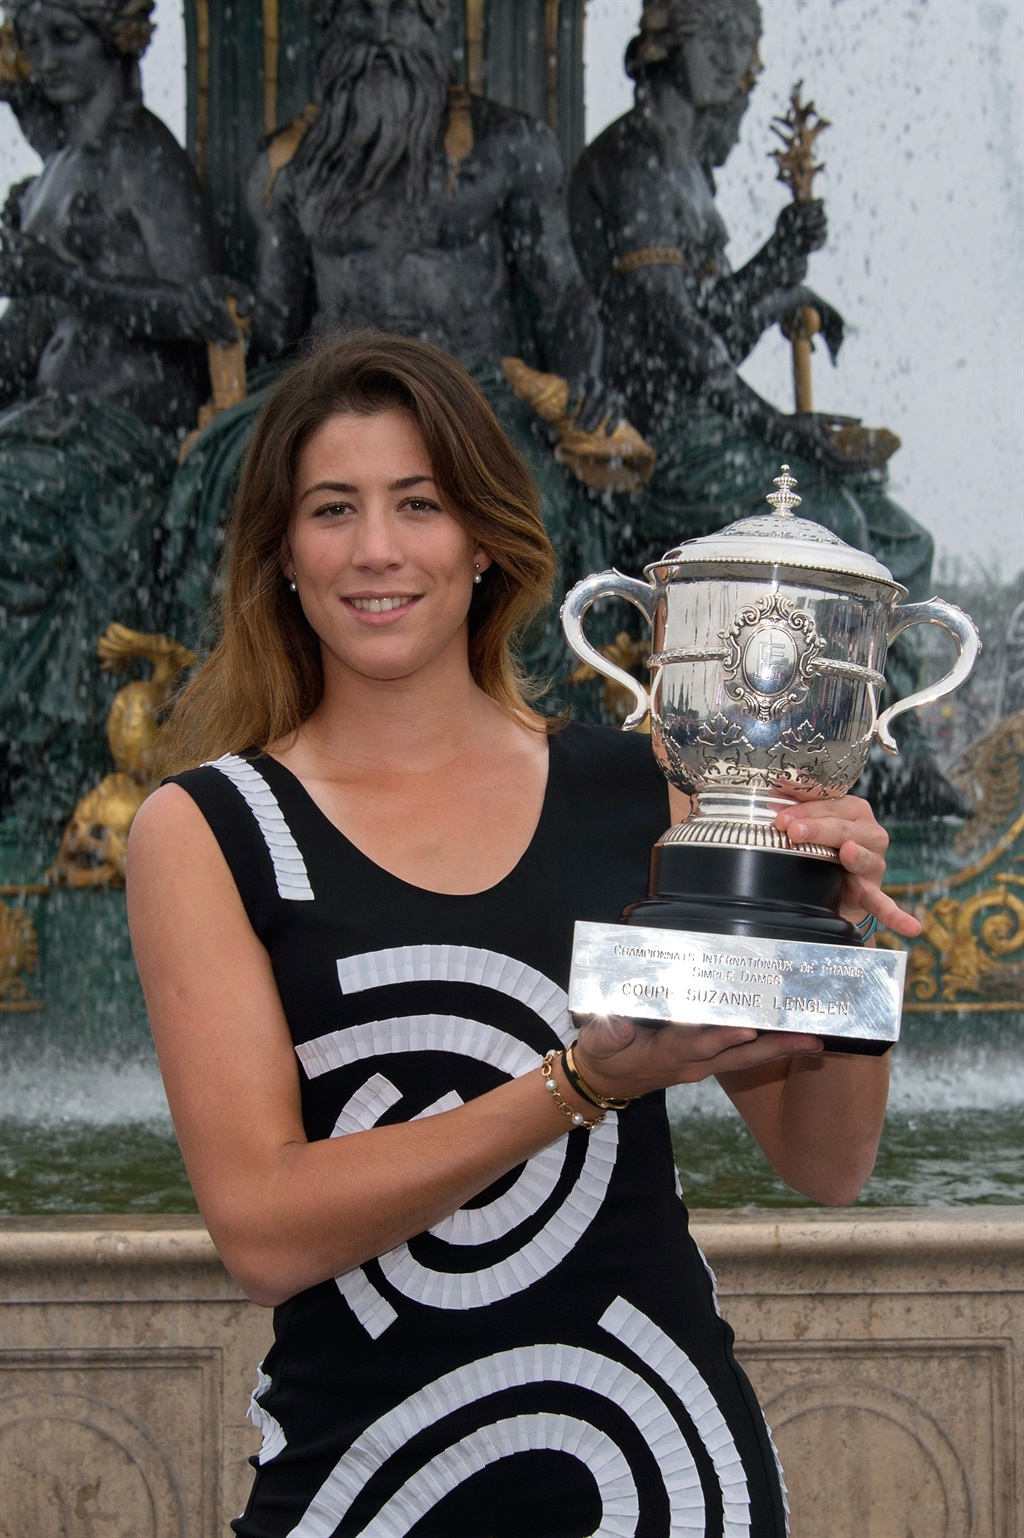 Desktop Garbine Muguruza With Cup Mobile Hd Images Free Background